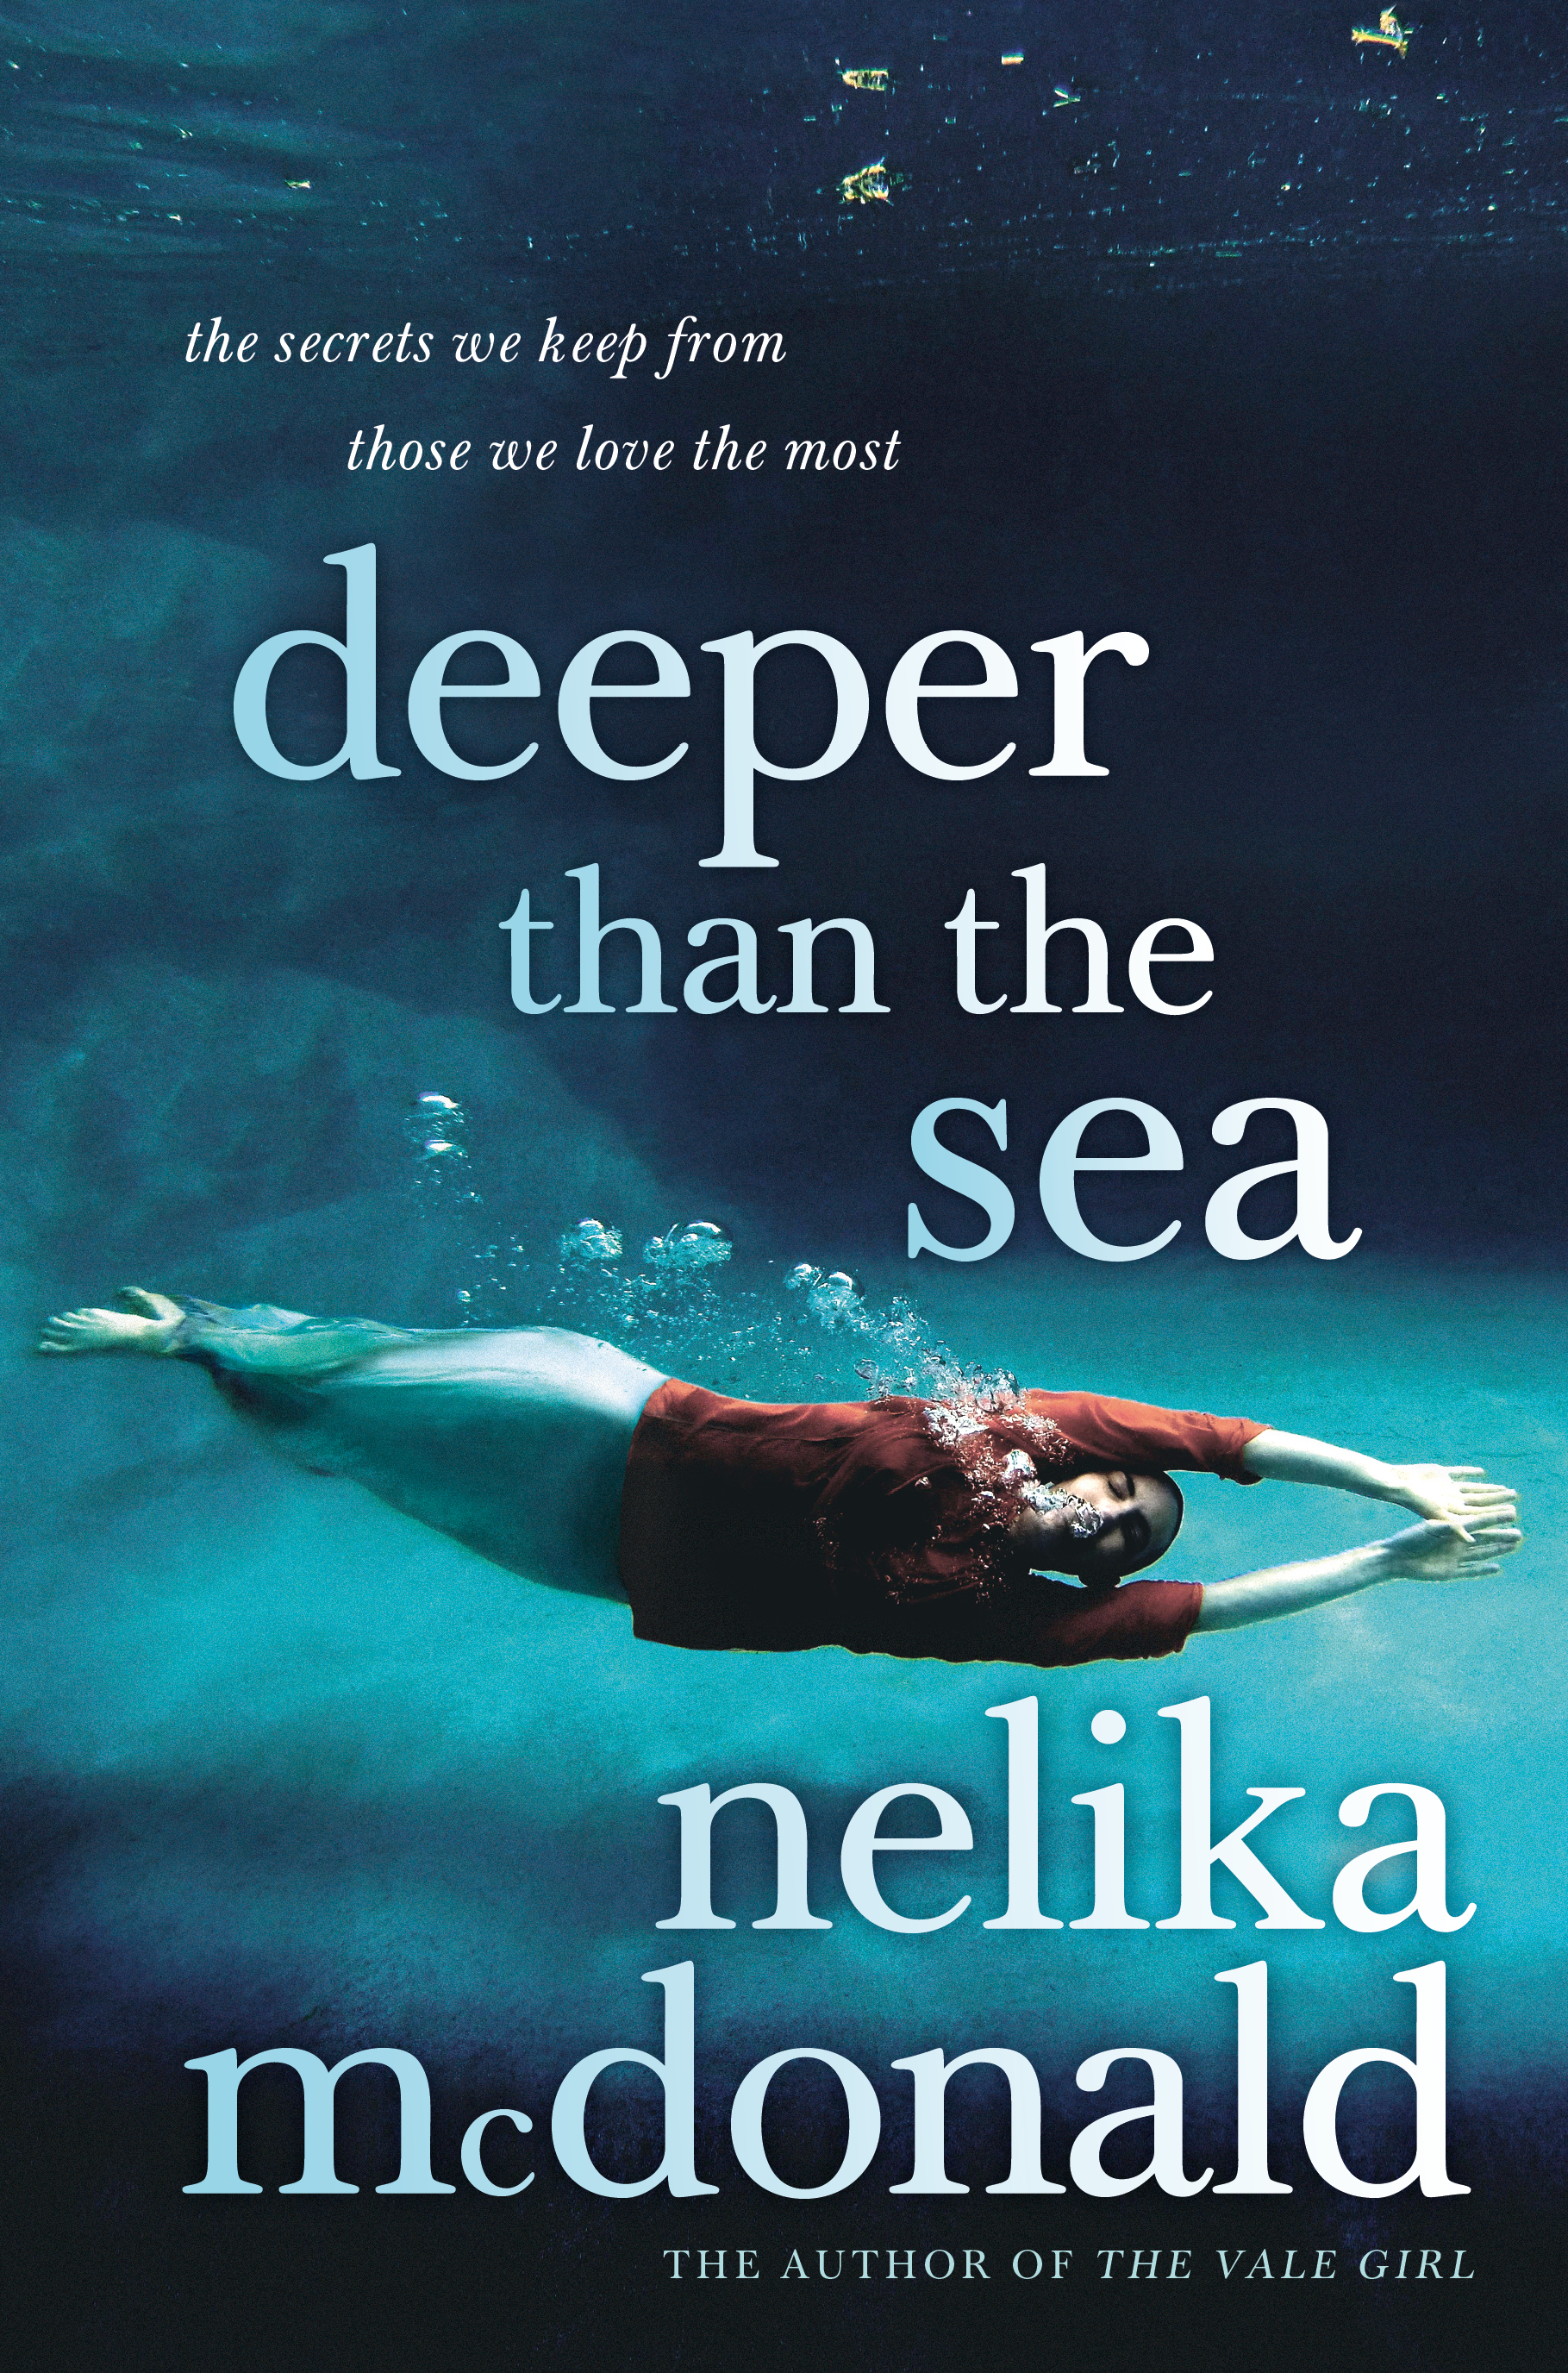 Deeper than the Sea - Pan Macmillan, 2017It's always been just Beth and her mother Theo. Until Beth is sixteen years old, and a stranger arrives in their small coastal town - a stranger with a claim that rips apart all Beth knows.What do you do when everything you thought you knew about yourself is based on a lie?In a deeply affecting story that challenges our notions of maternal love, Nelika McDonald examines the myriad ways that love is forged and tempered over years and how fiercely it is defended.Review: Sydney Morning Herald, August 24, 2017